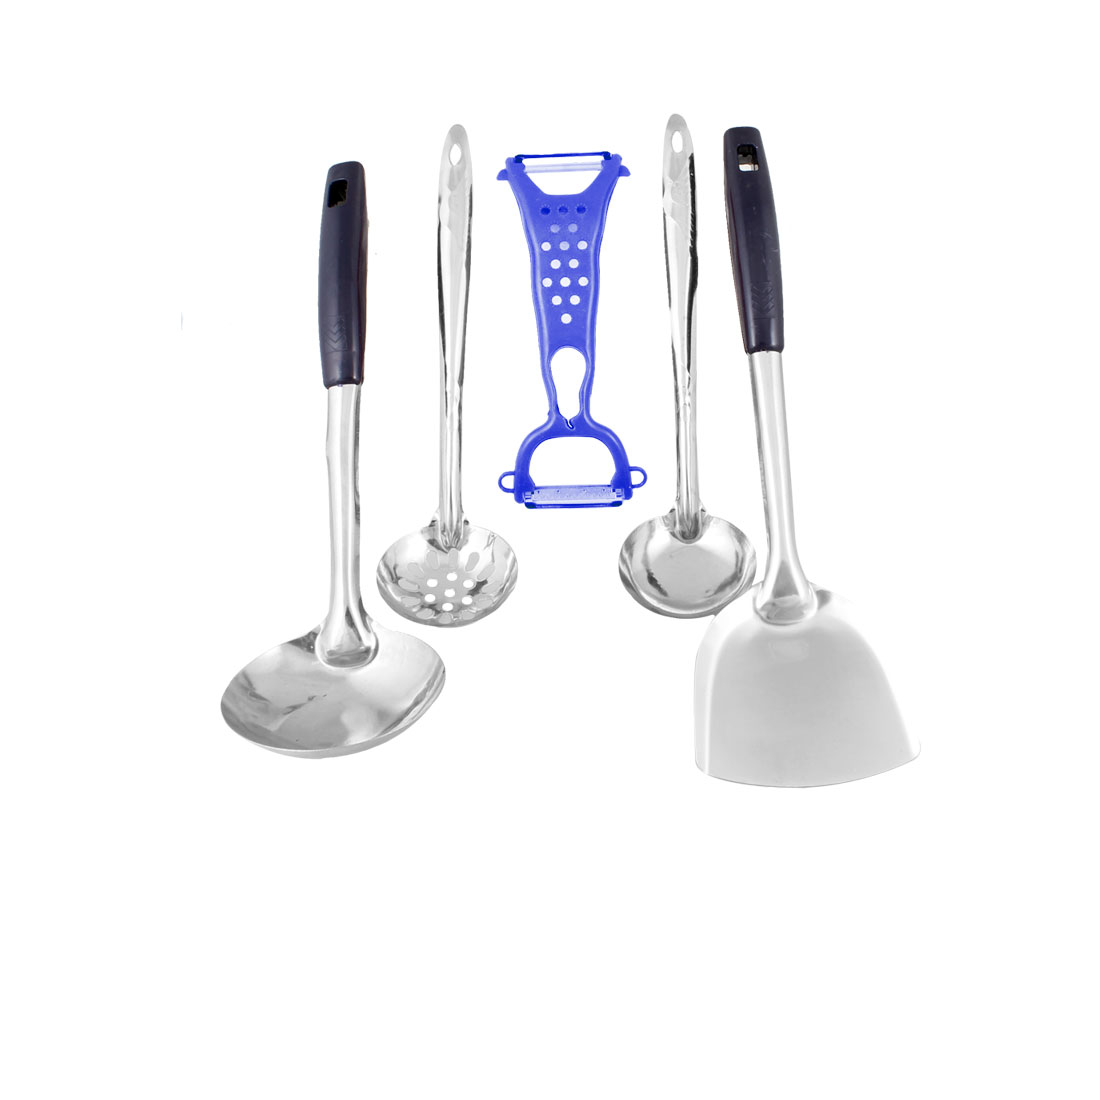 Hollow out Ladle Spatula Blue Fruit Vegetable Peeler Kitchen Ware Set 5 in 1